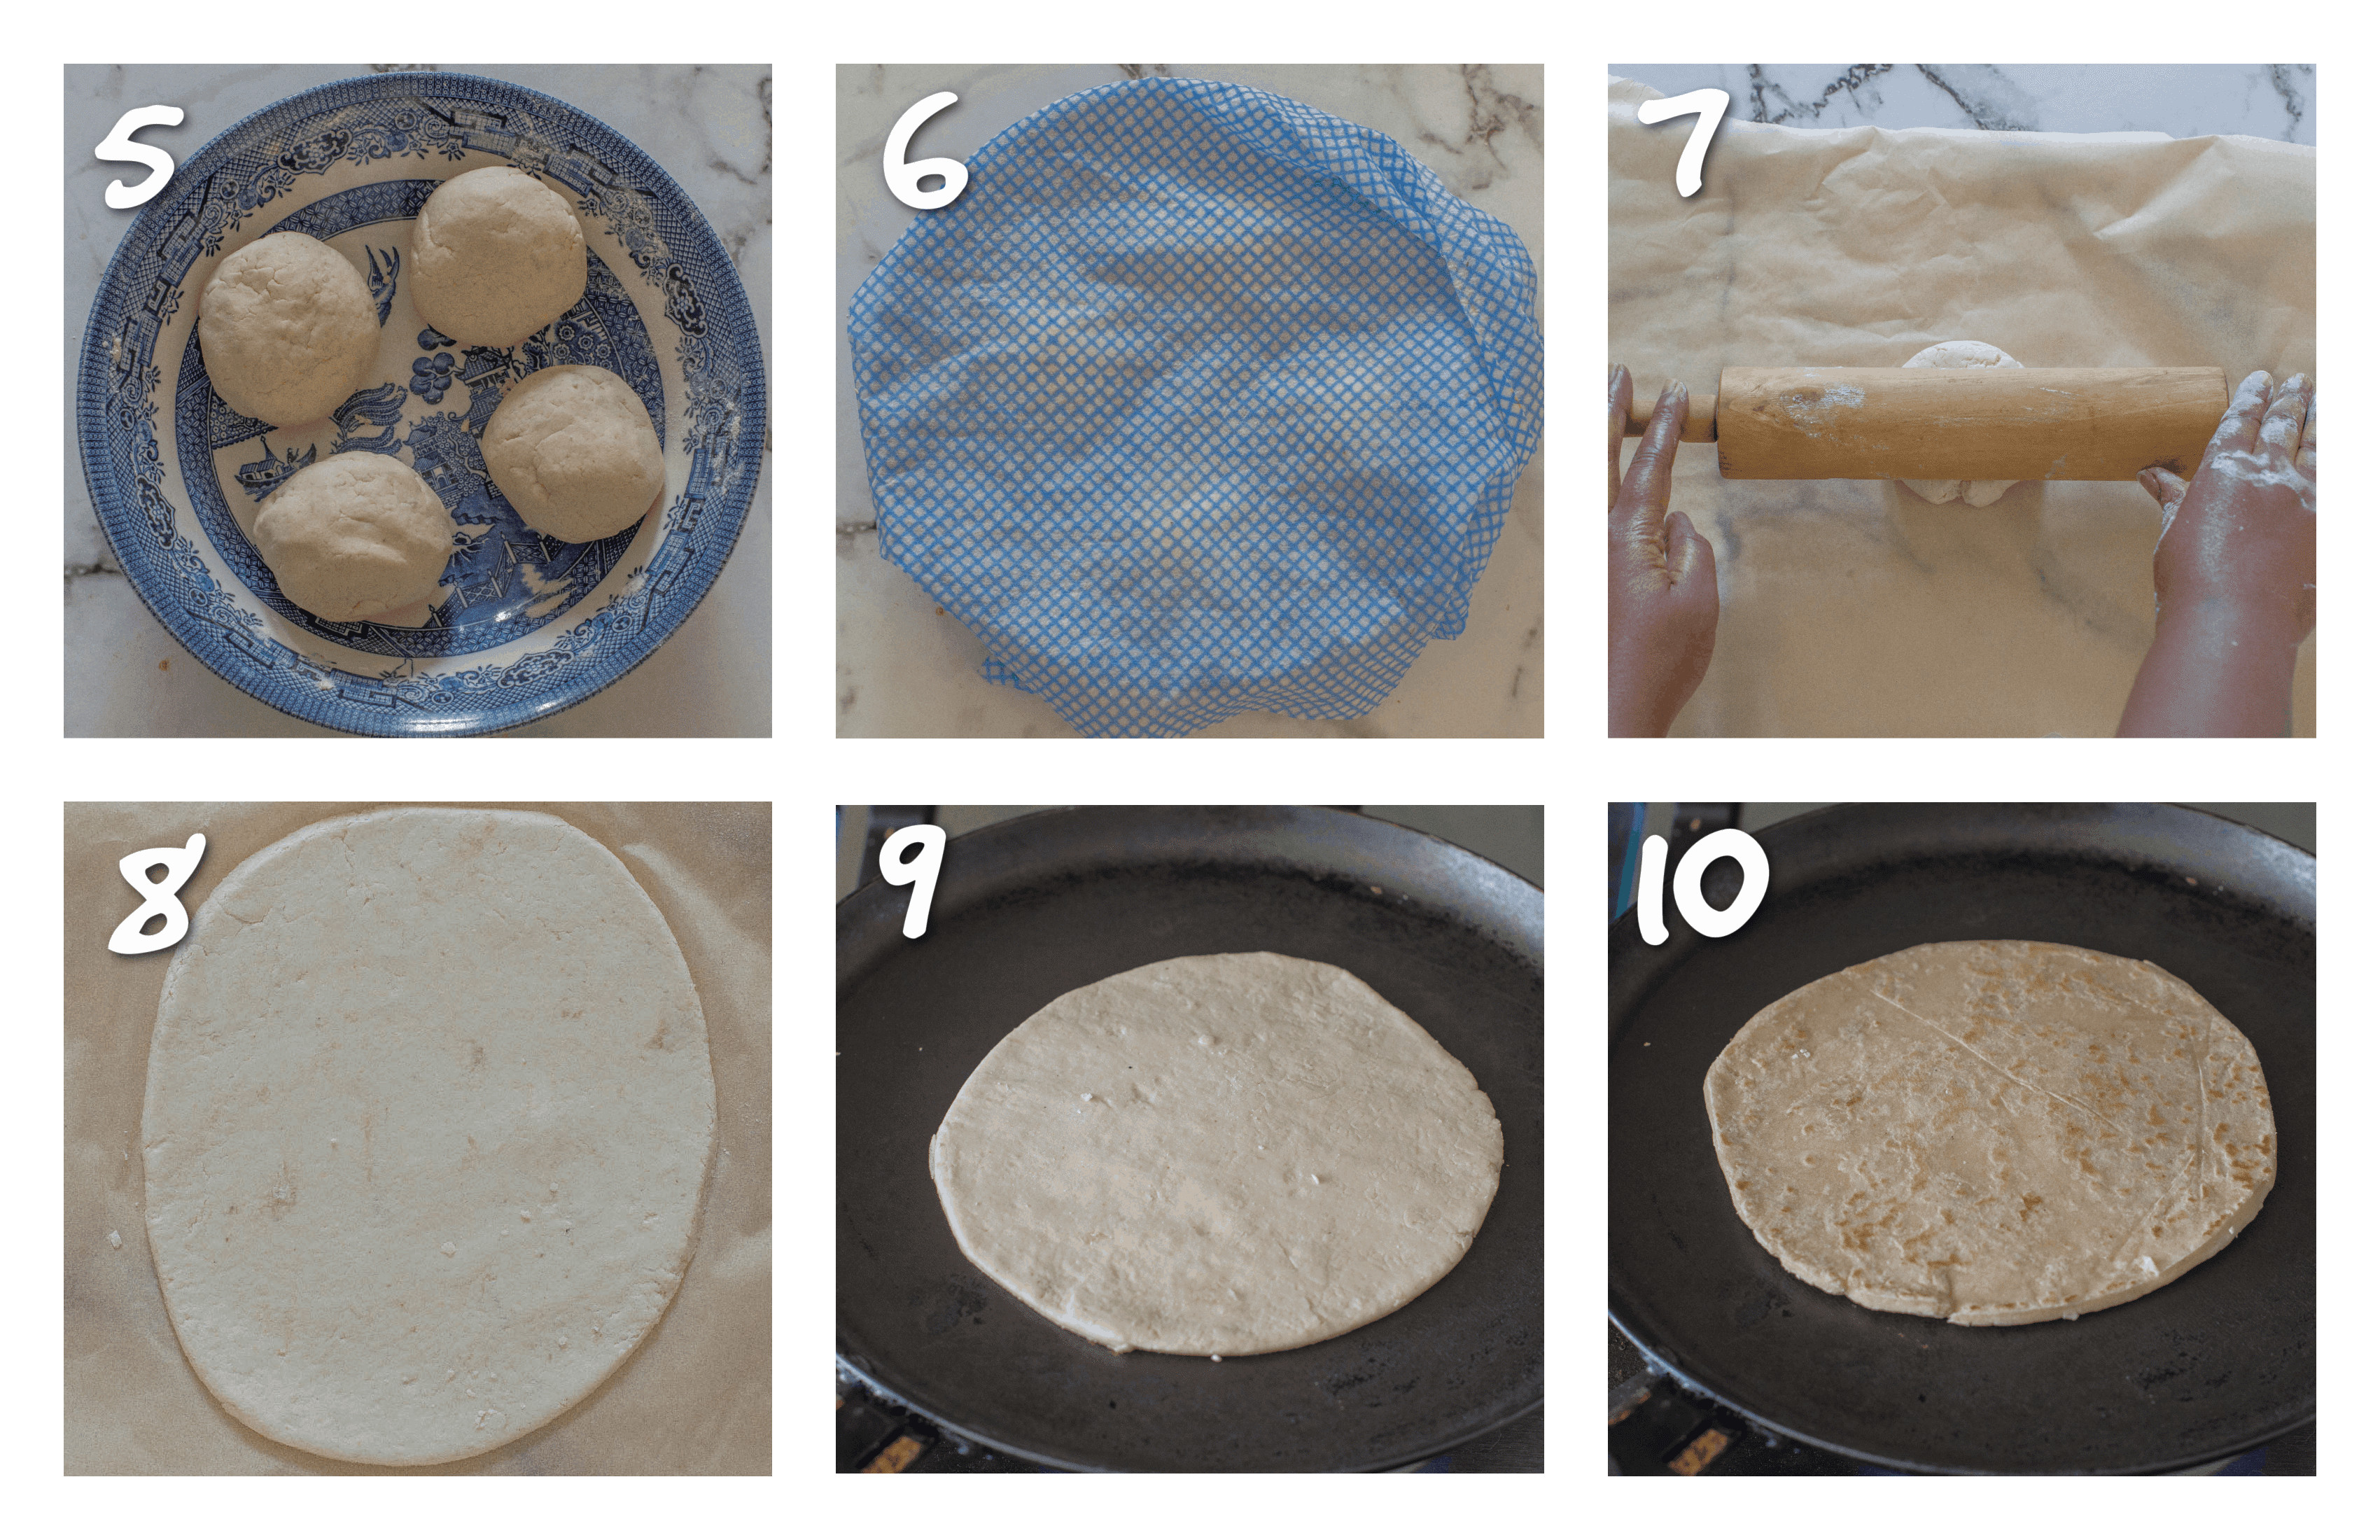 steps 5-10 rolling the dough and then cooking it